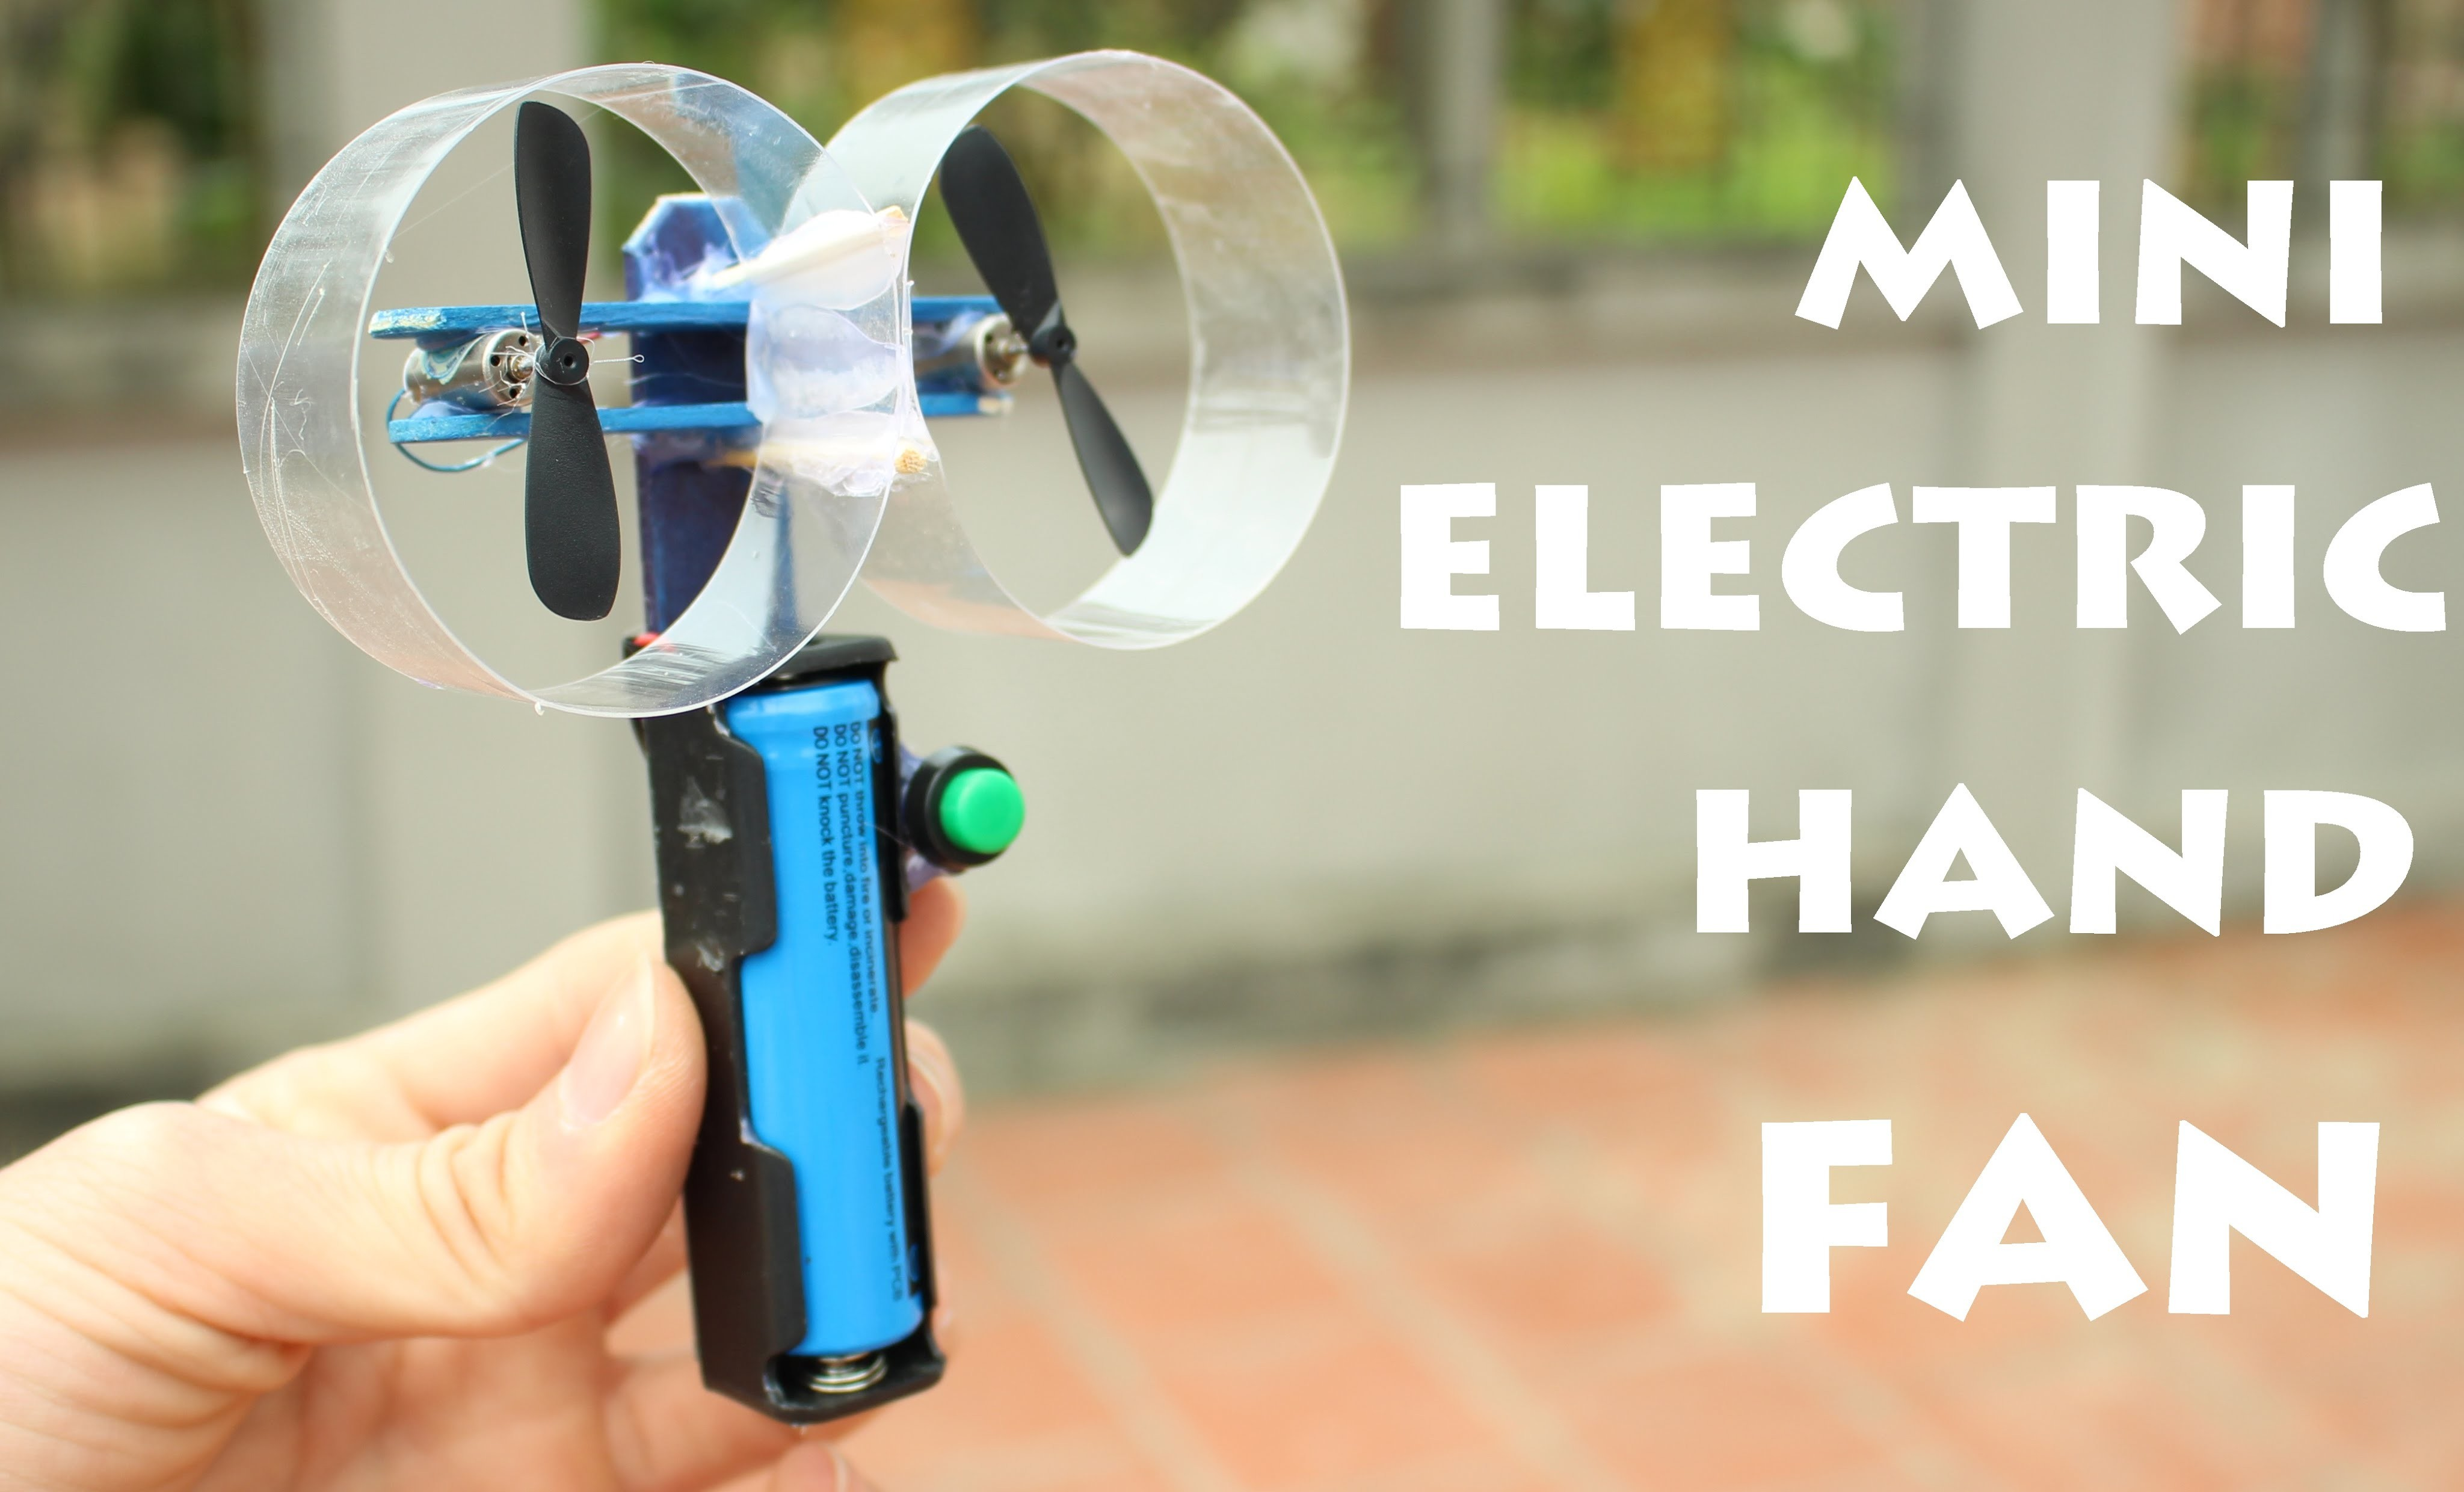 How to make a Mini Electric Hand Fan